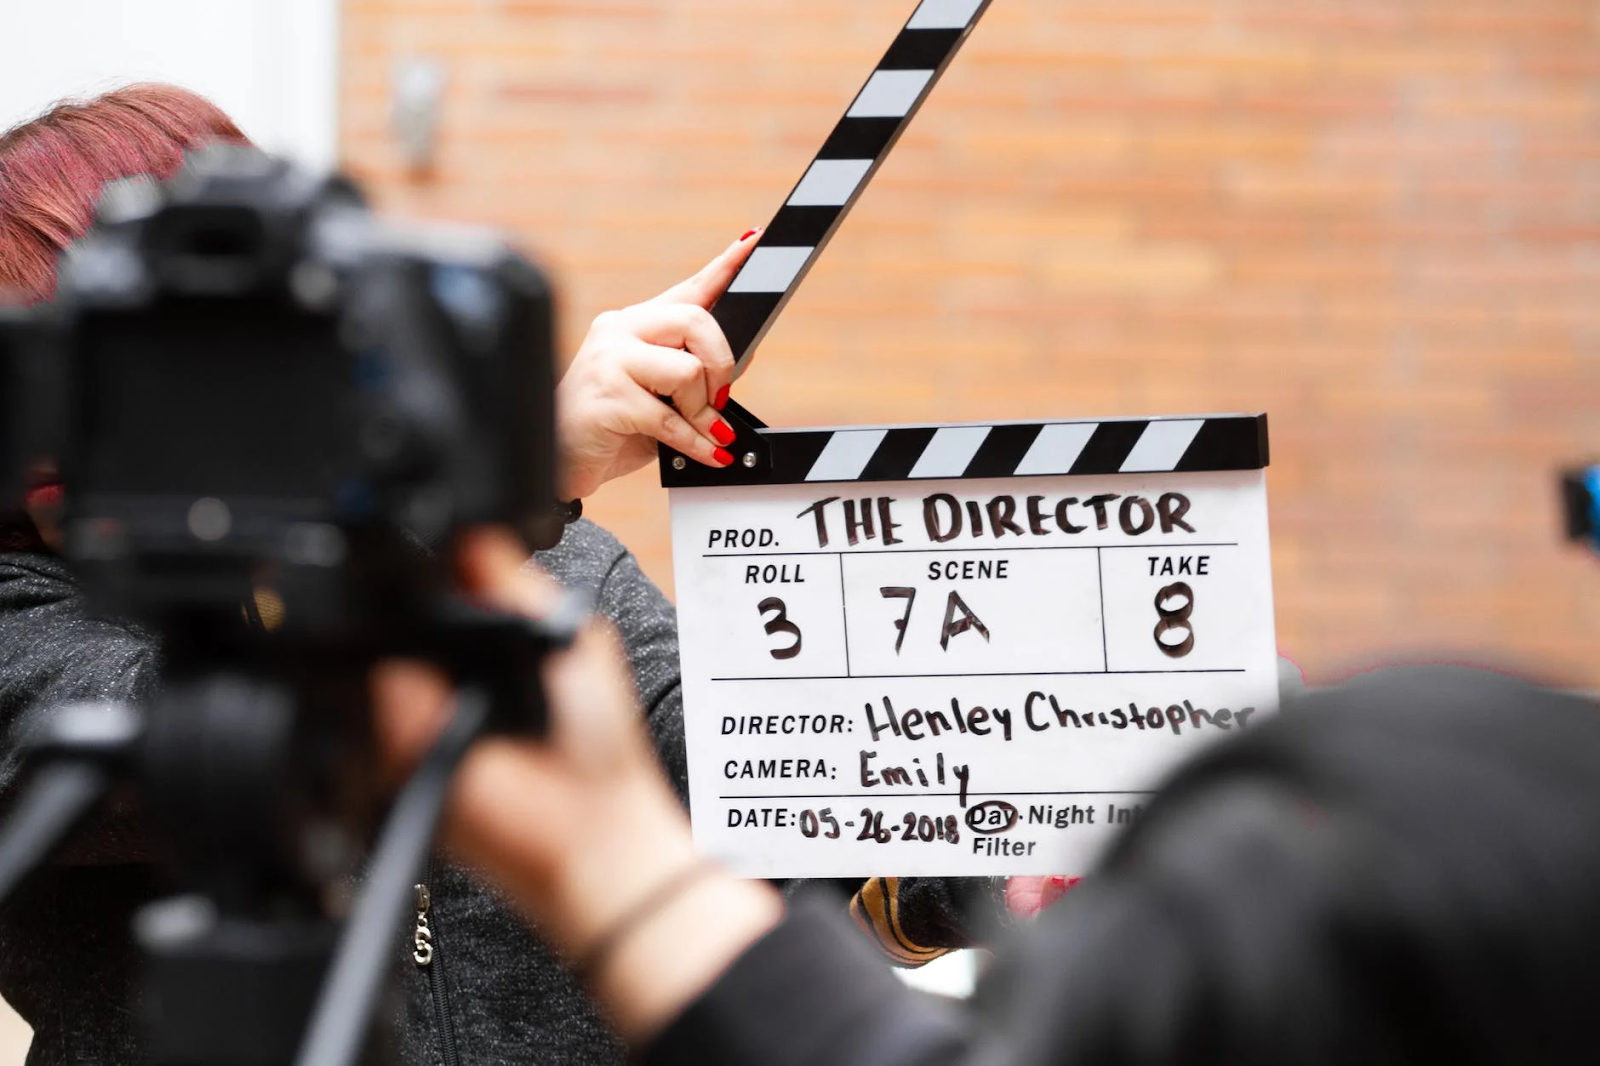 image of a man holding a clapper board